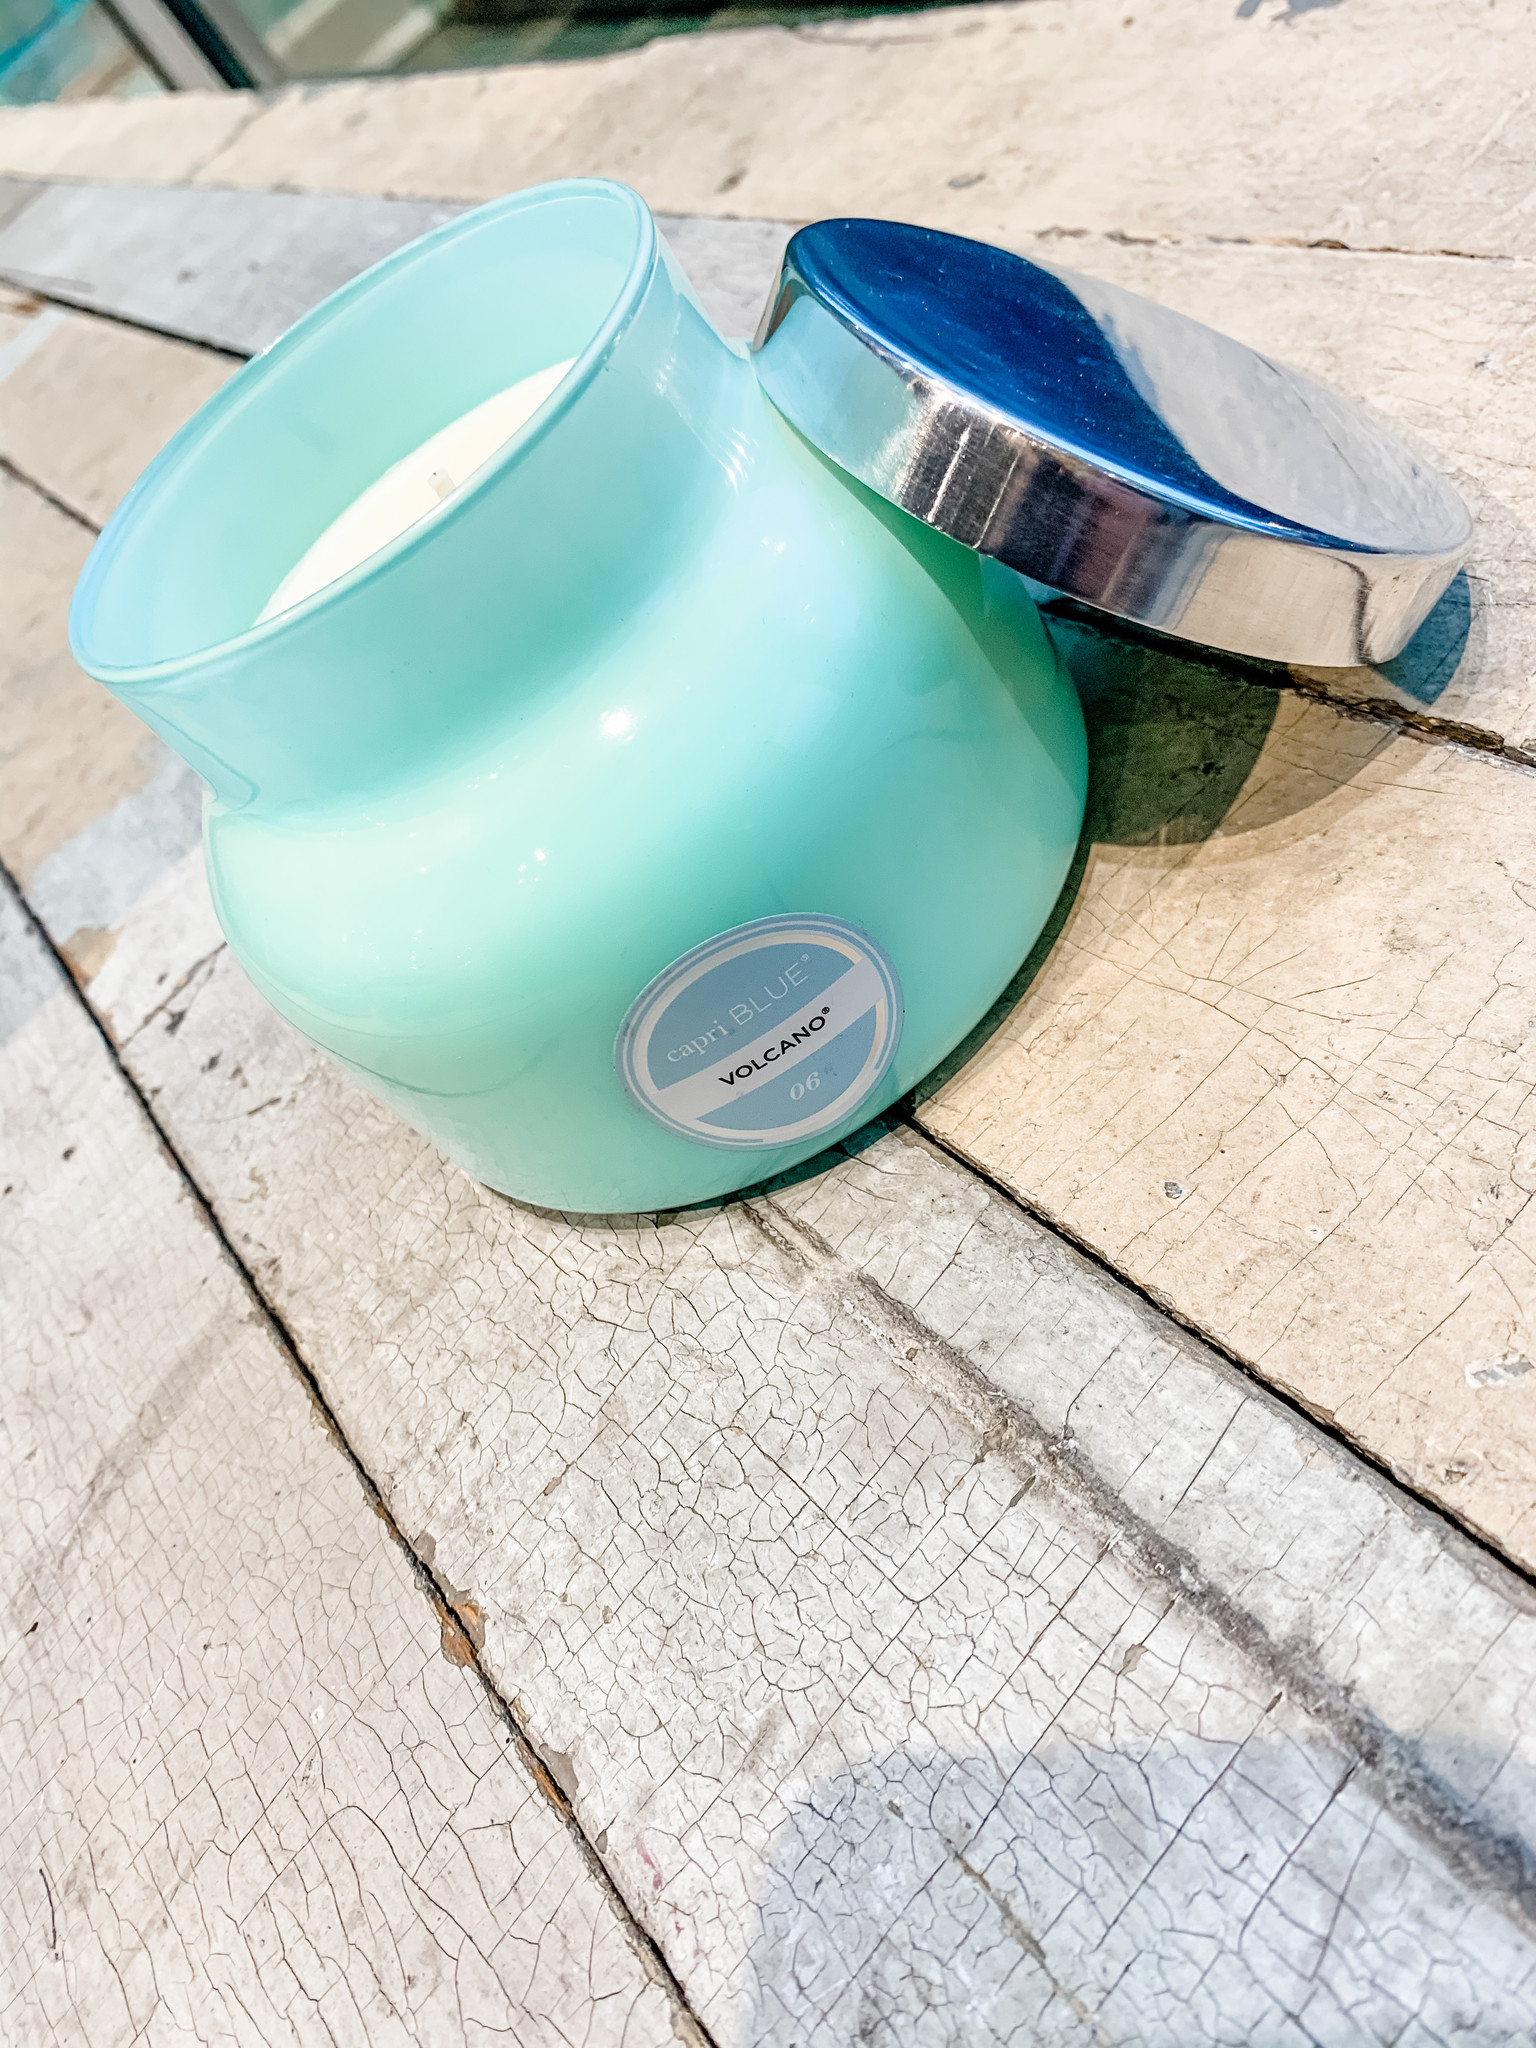 Capri Blue Signature Volcano Candle